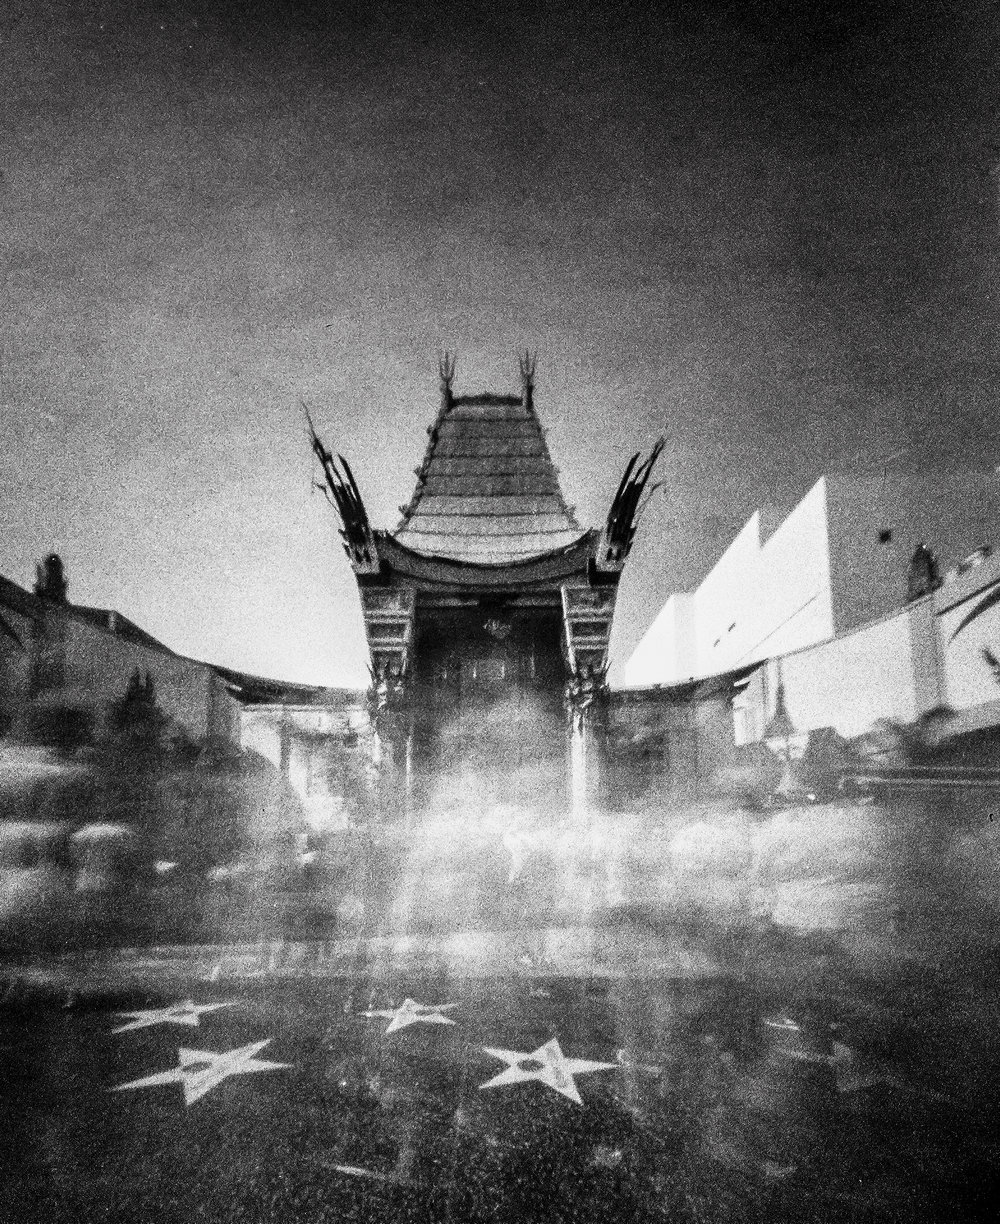 Tourist Ghosts Of Graumann's Chinese Theatre | Reality So Subtle 4x5 Pinhole | Kodak Royal X-Pan, expired 1961 at ISO 6 | James Thorpe